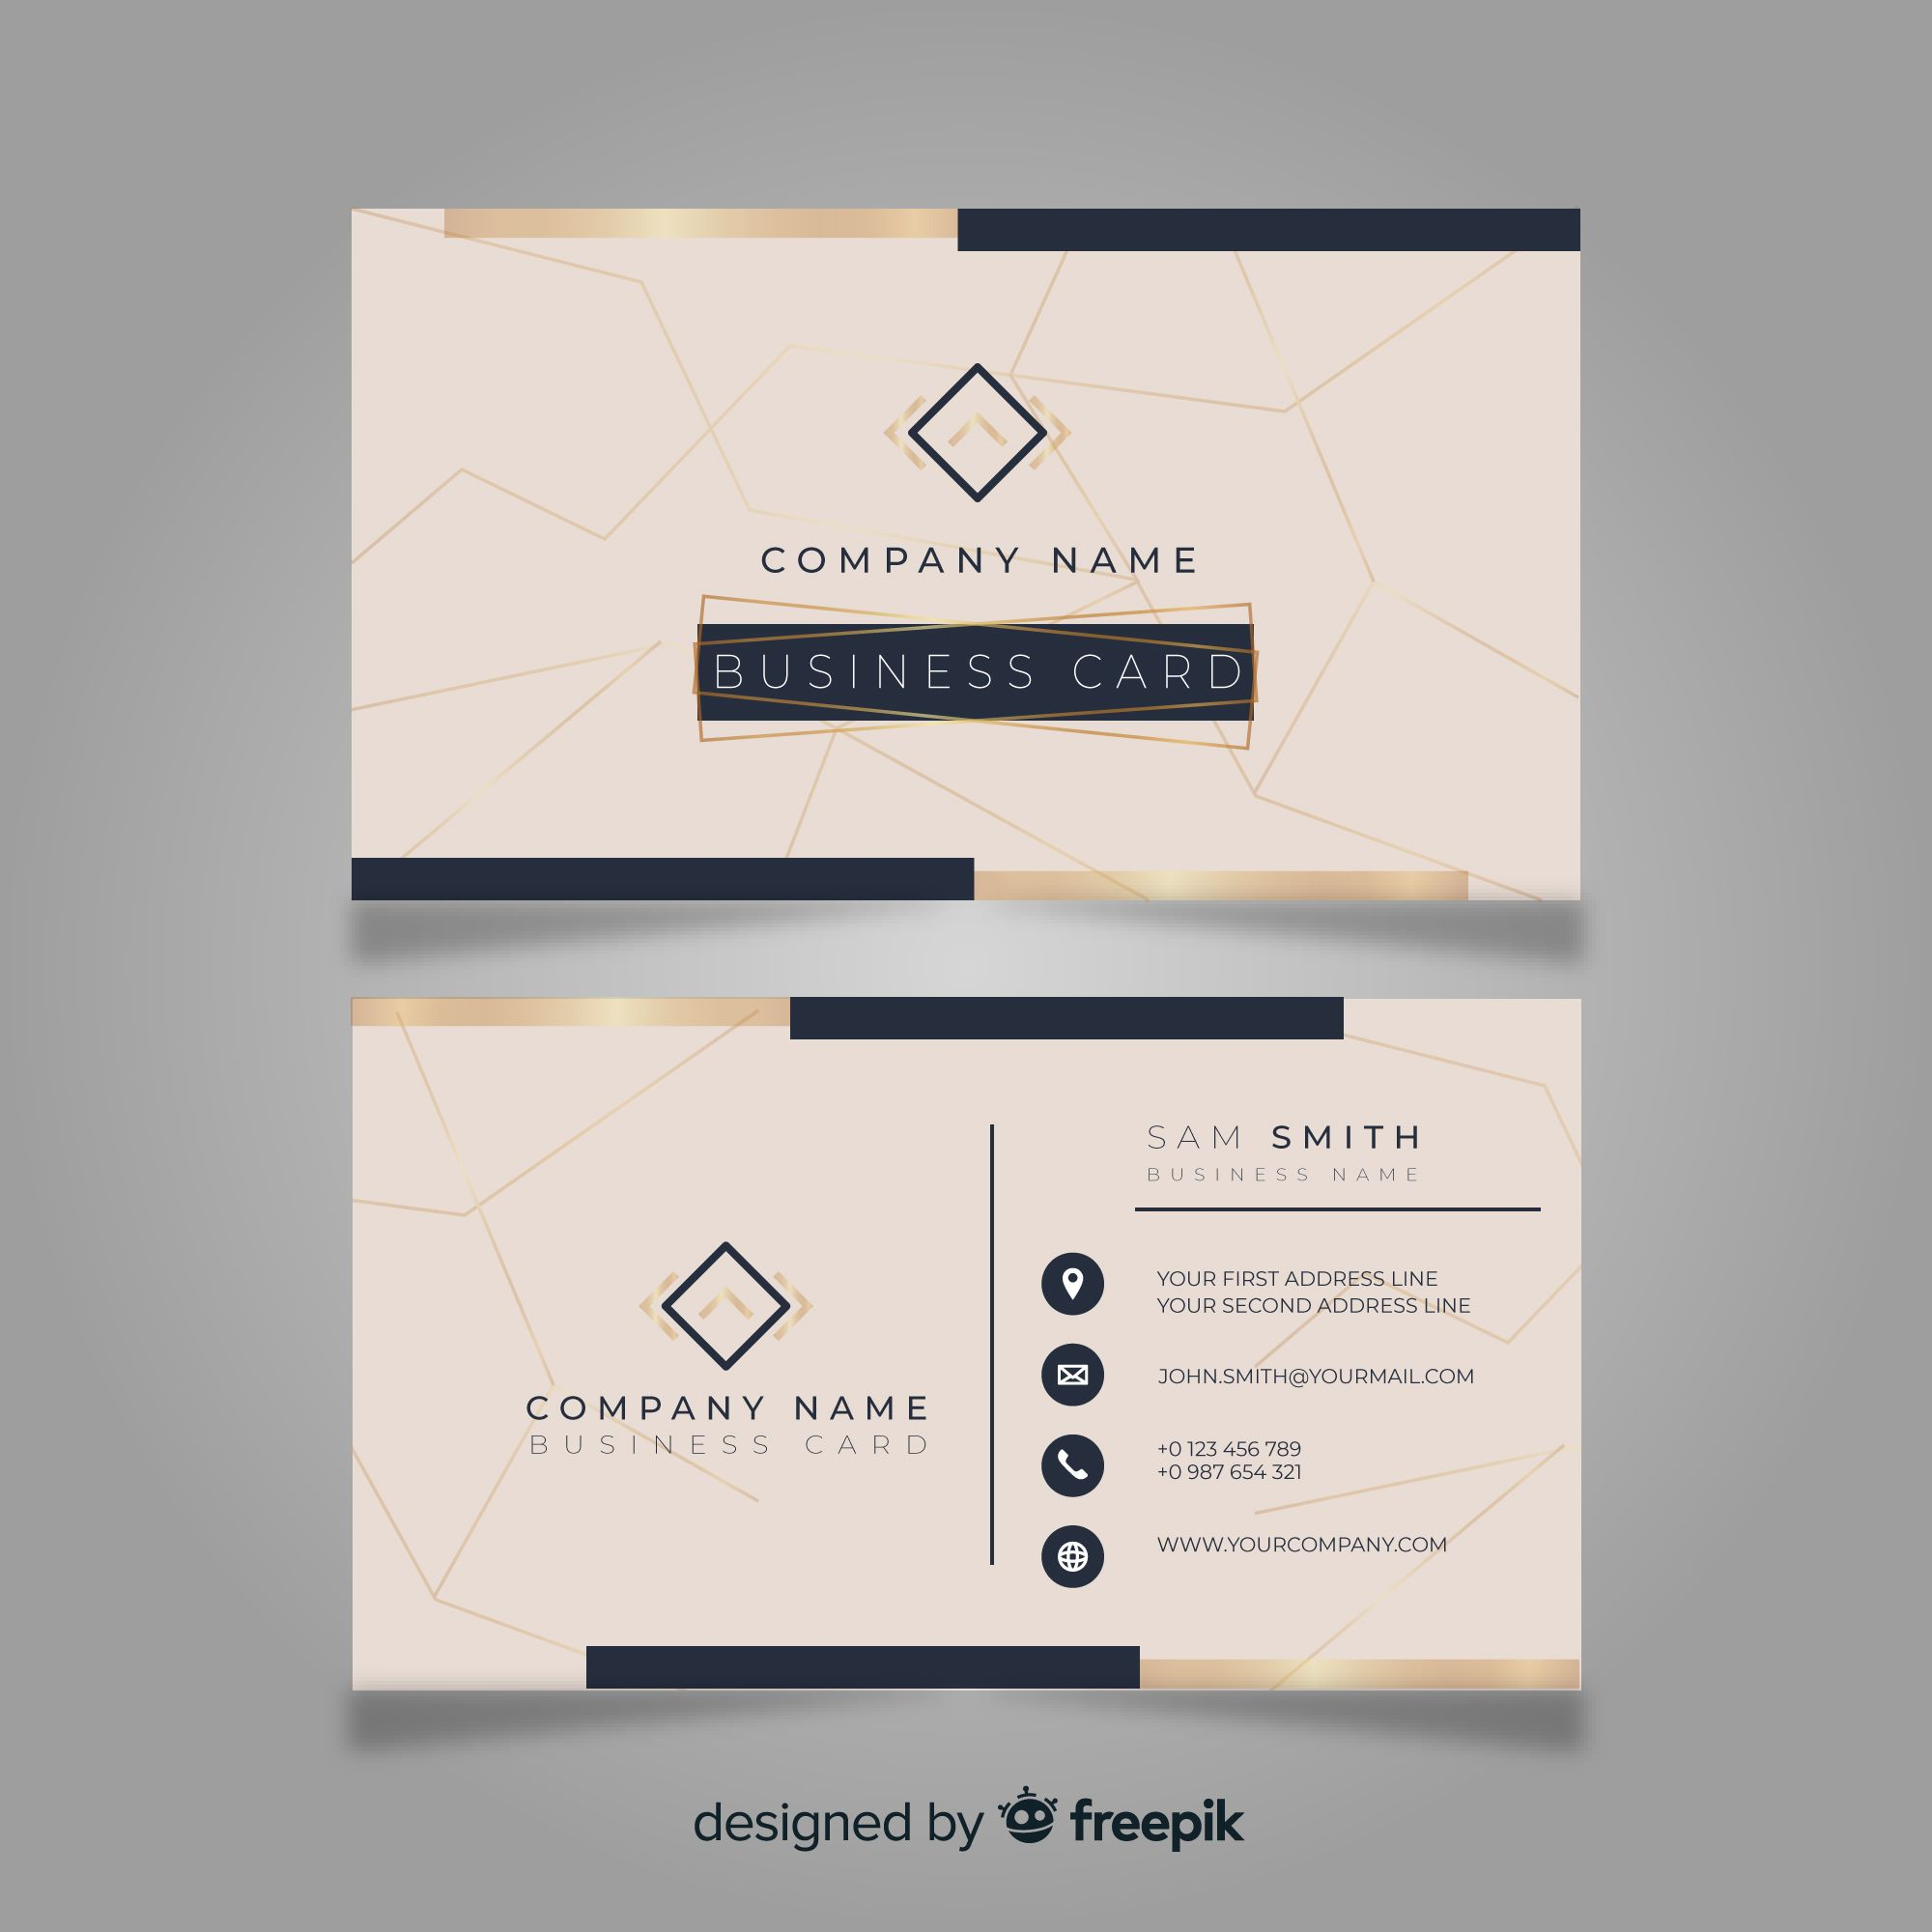 Business Card Template Free Business Card Templates Business Card Template Business Card Design